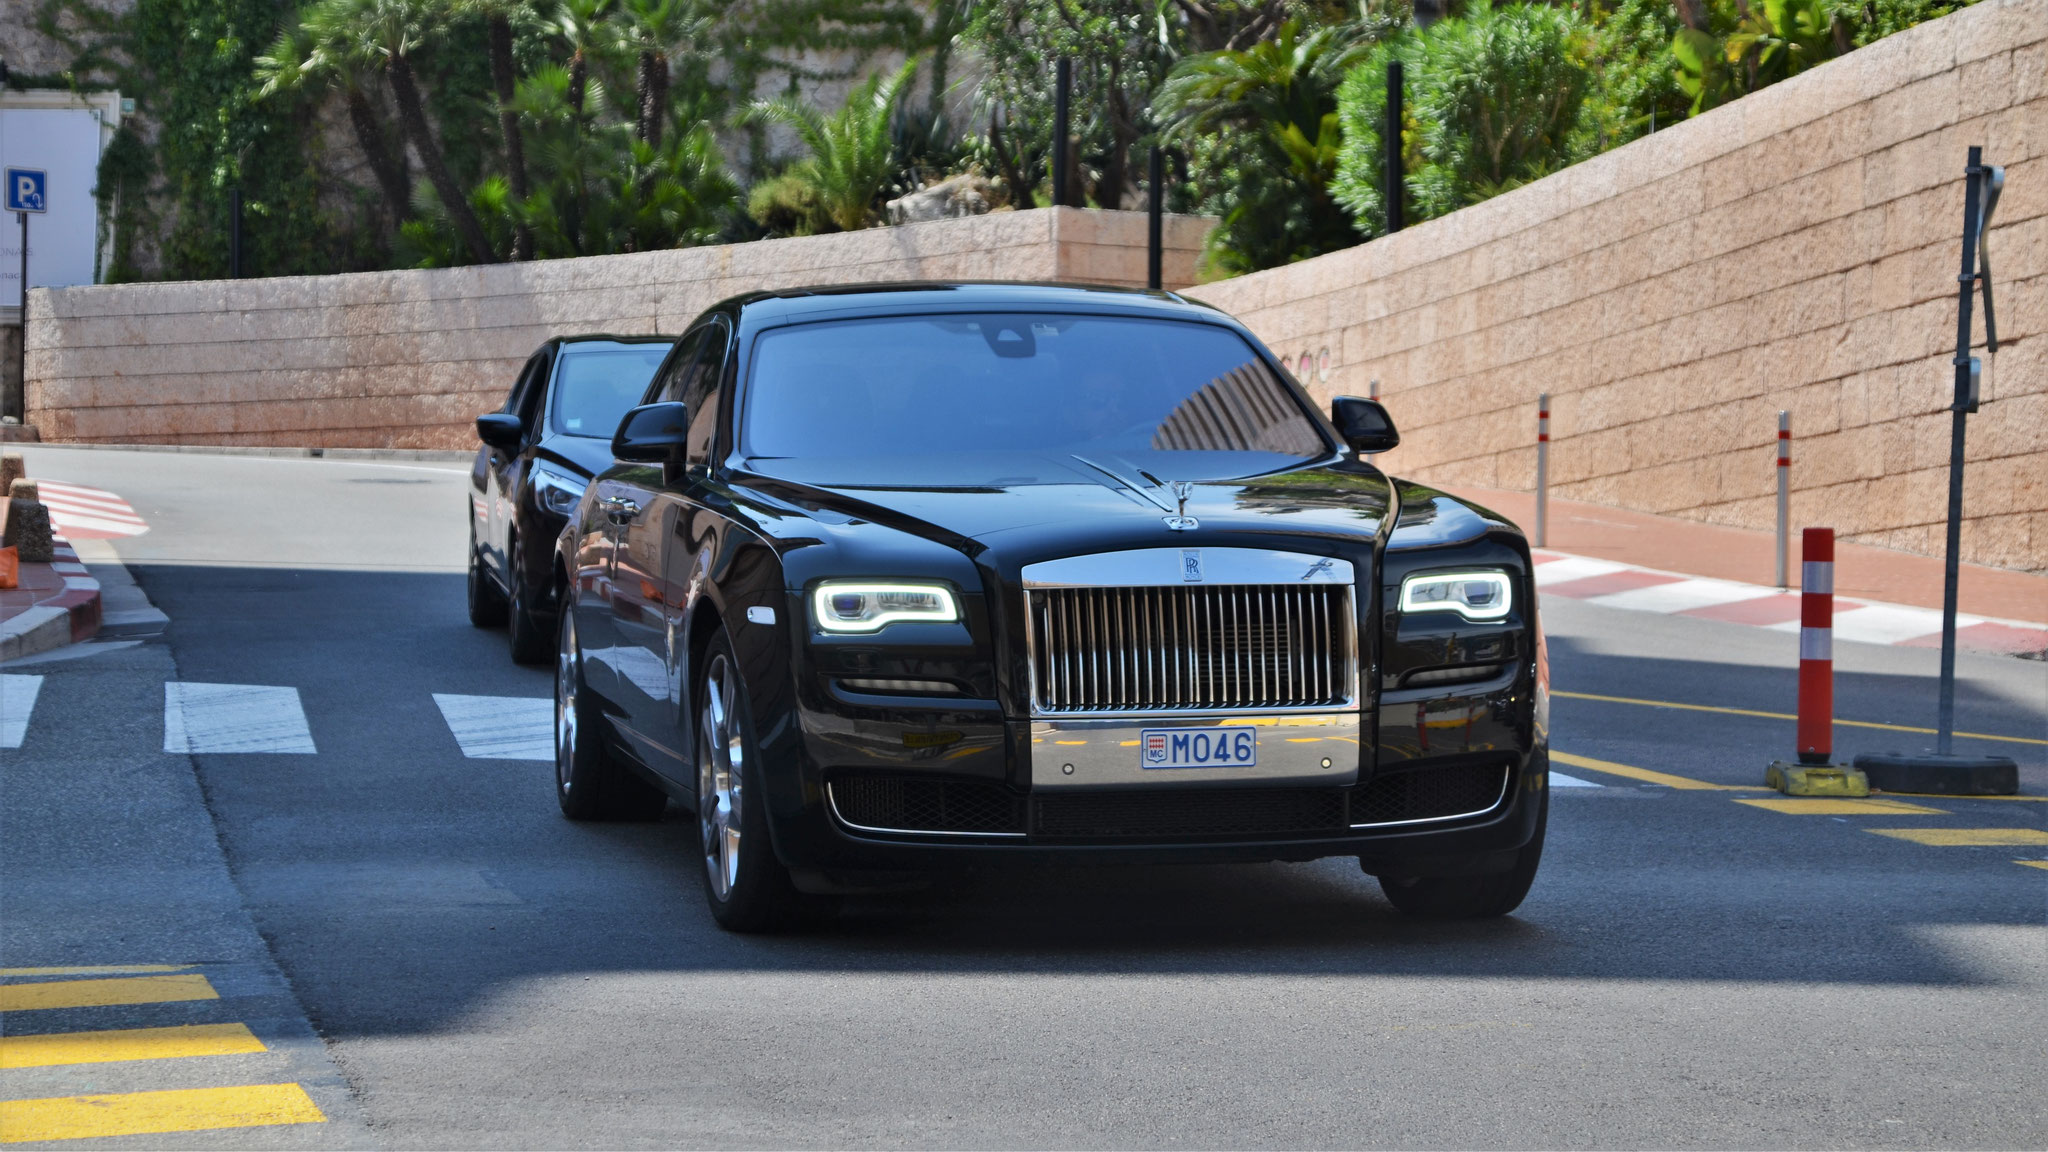 Rolls Royce Ghost Series II - M046 (MC)